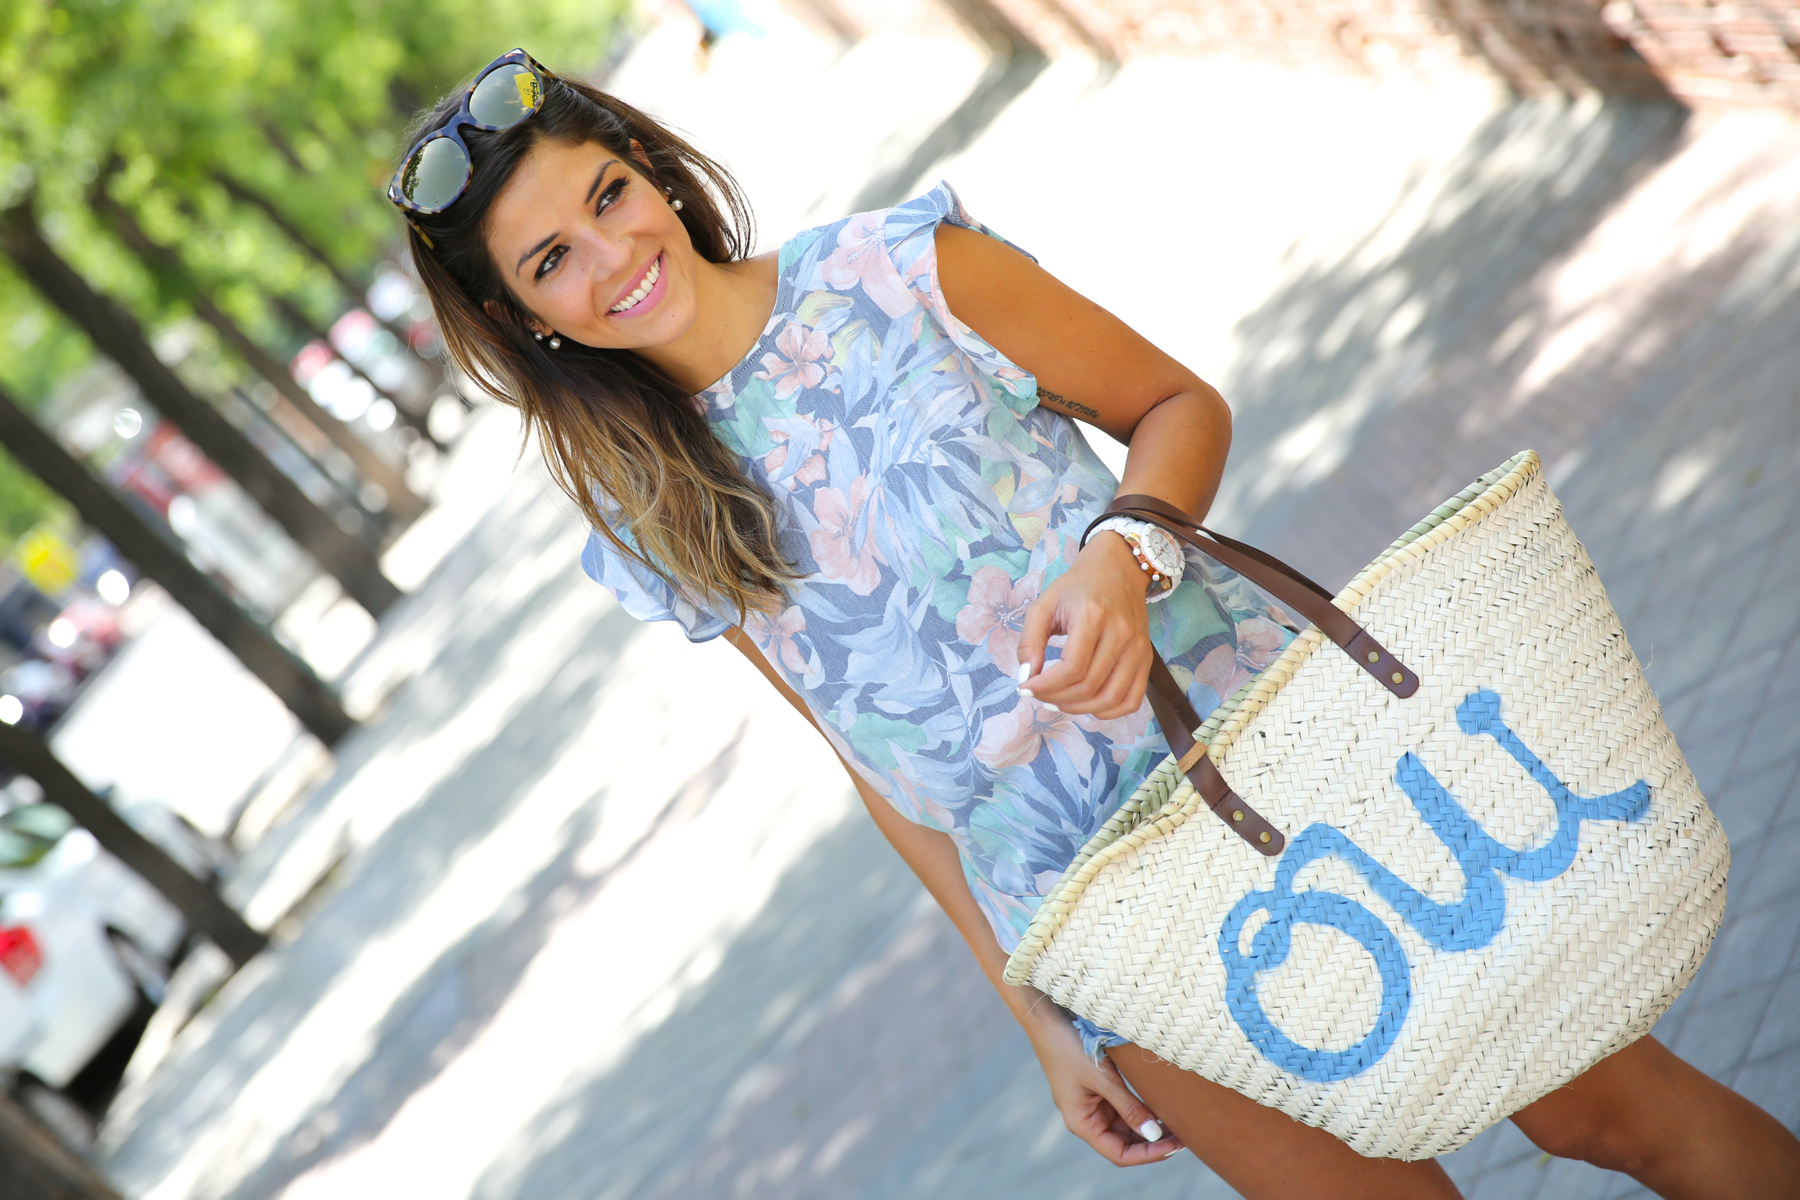 trendy_taste-look-outfit-street_style-oot-blog-blogger-fashion_spain-moda_españa-flower_print-estampado_flores-capazo-verano-summer-beach-playa-zara-denim_shorts-shorts_vaqueros-hype-6